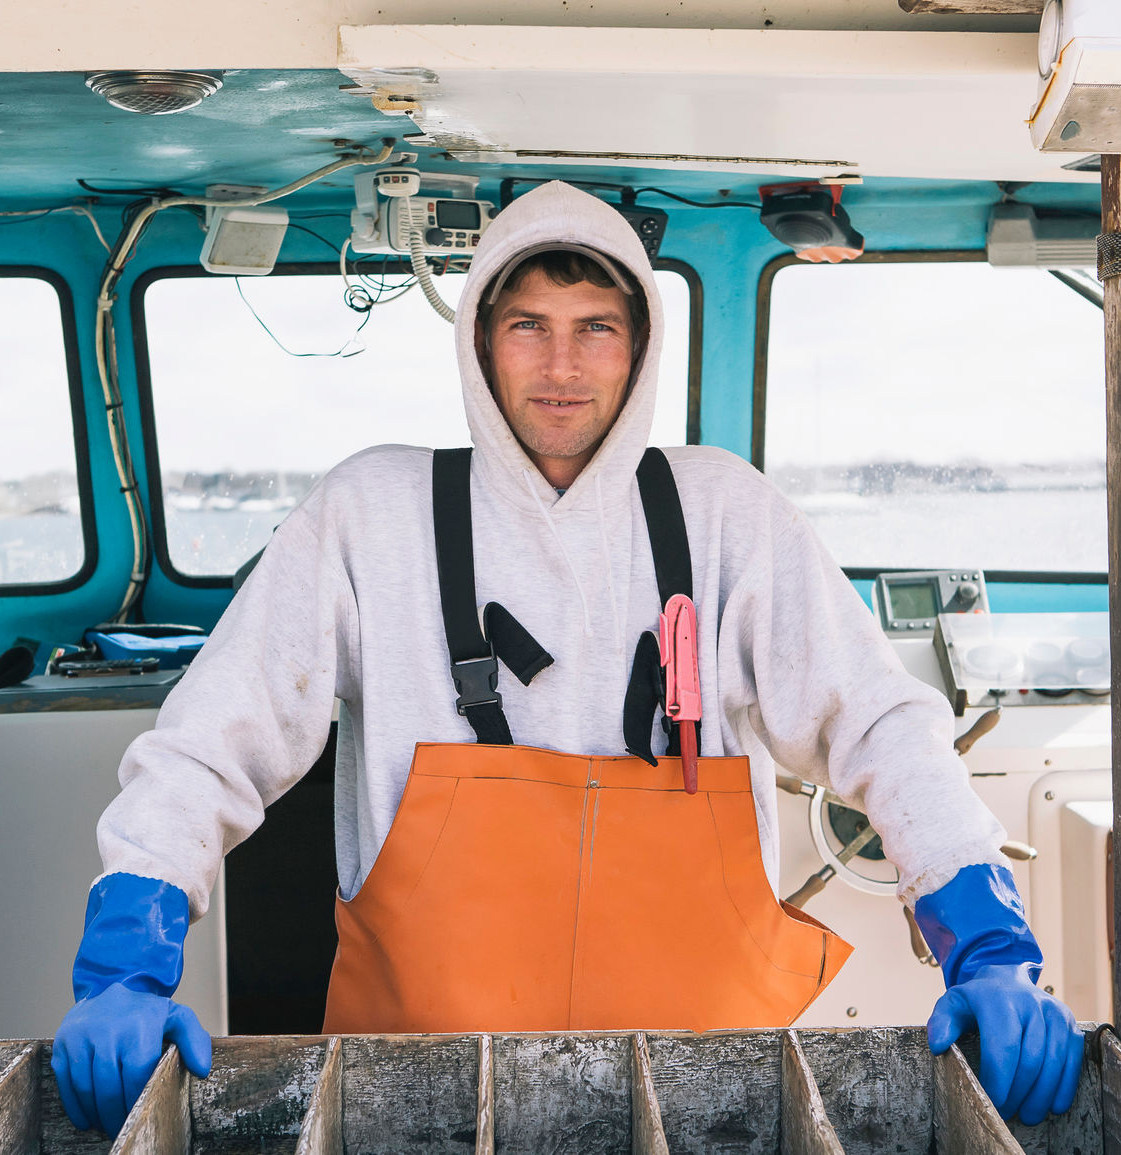 Image of a man on a cargo ship